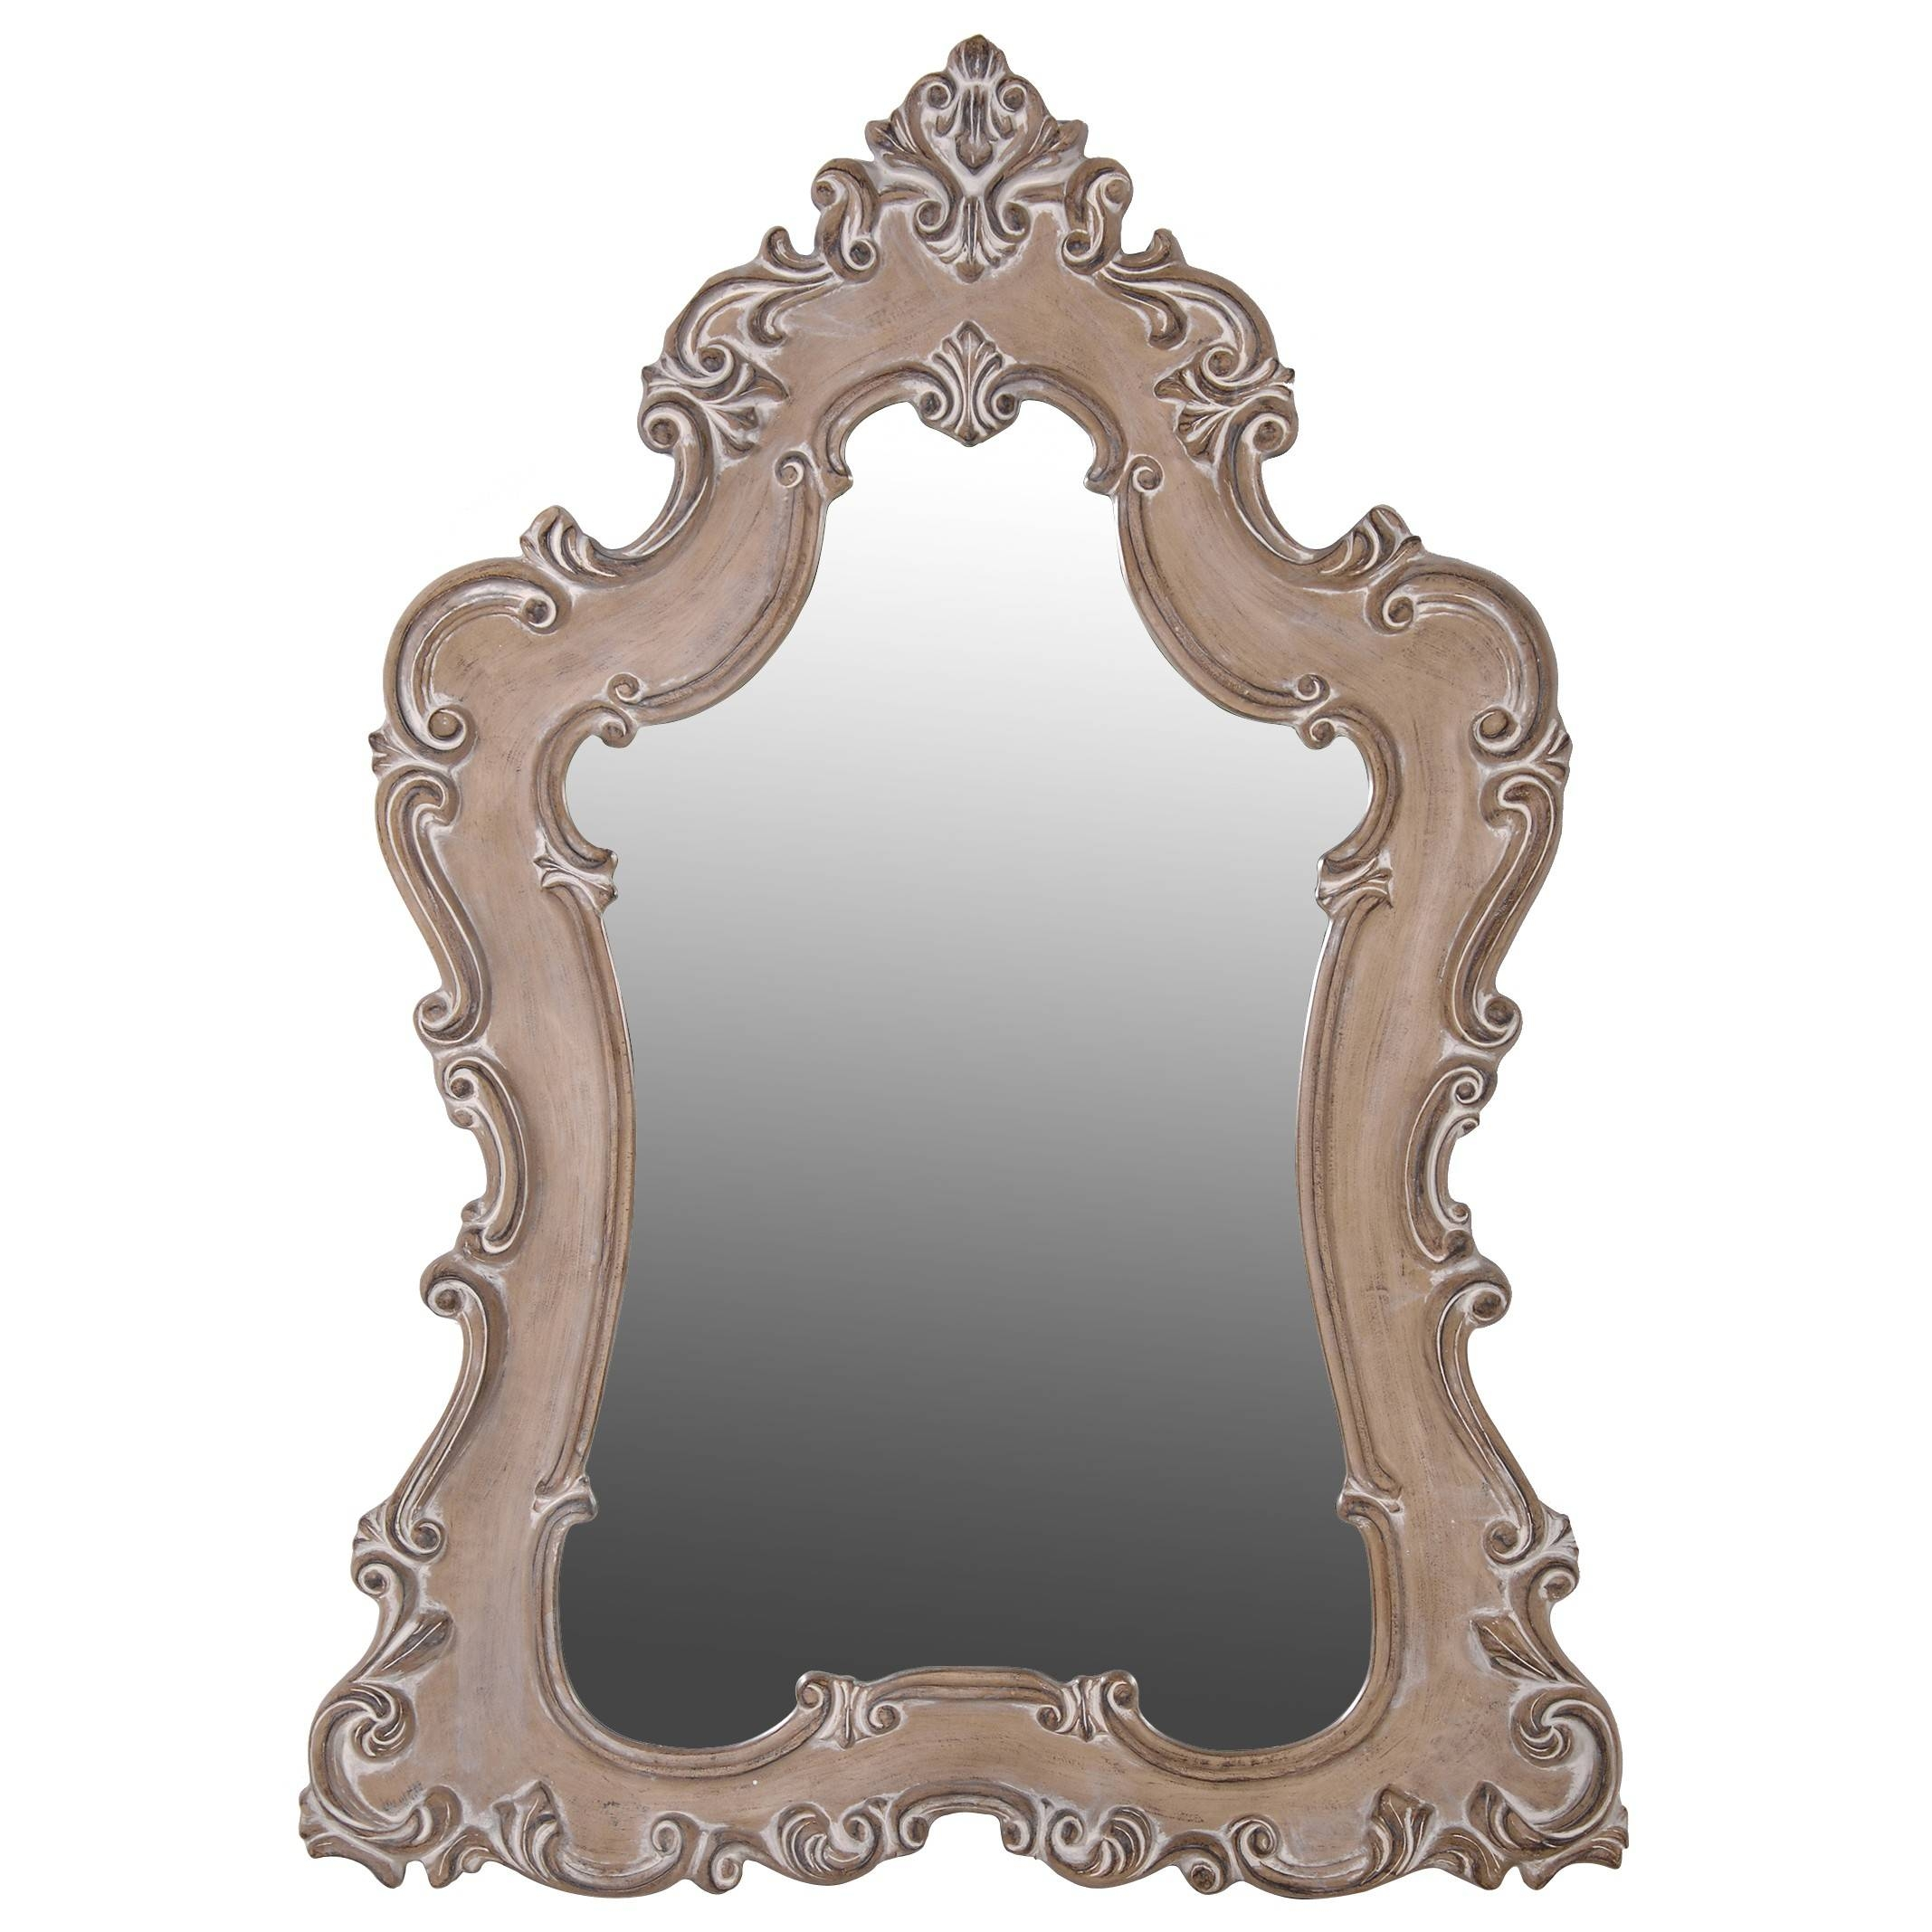 Interior & Decoration: Wall Mirrors For Interior Designornate inside Ornate Wall Mirrors (Image 15 of 25)